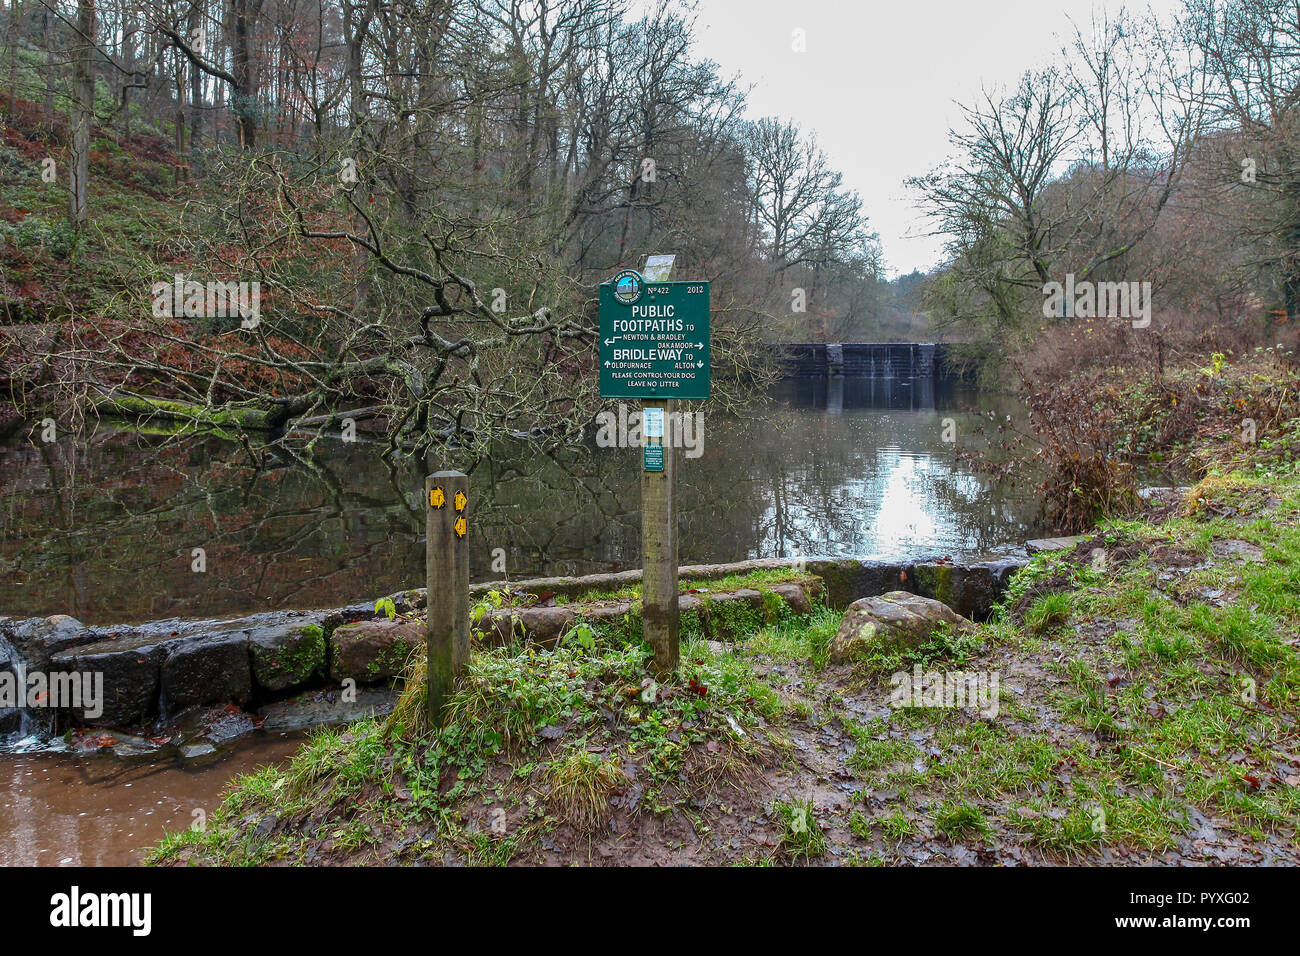 A metal footpath sign erected by Peak and Northern Footpaths Society at the fish ponds, Dimmingsdale, near to Oakamoor, Staffordshire, England, UK - Stock Image